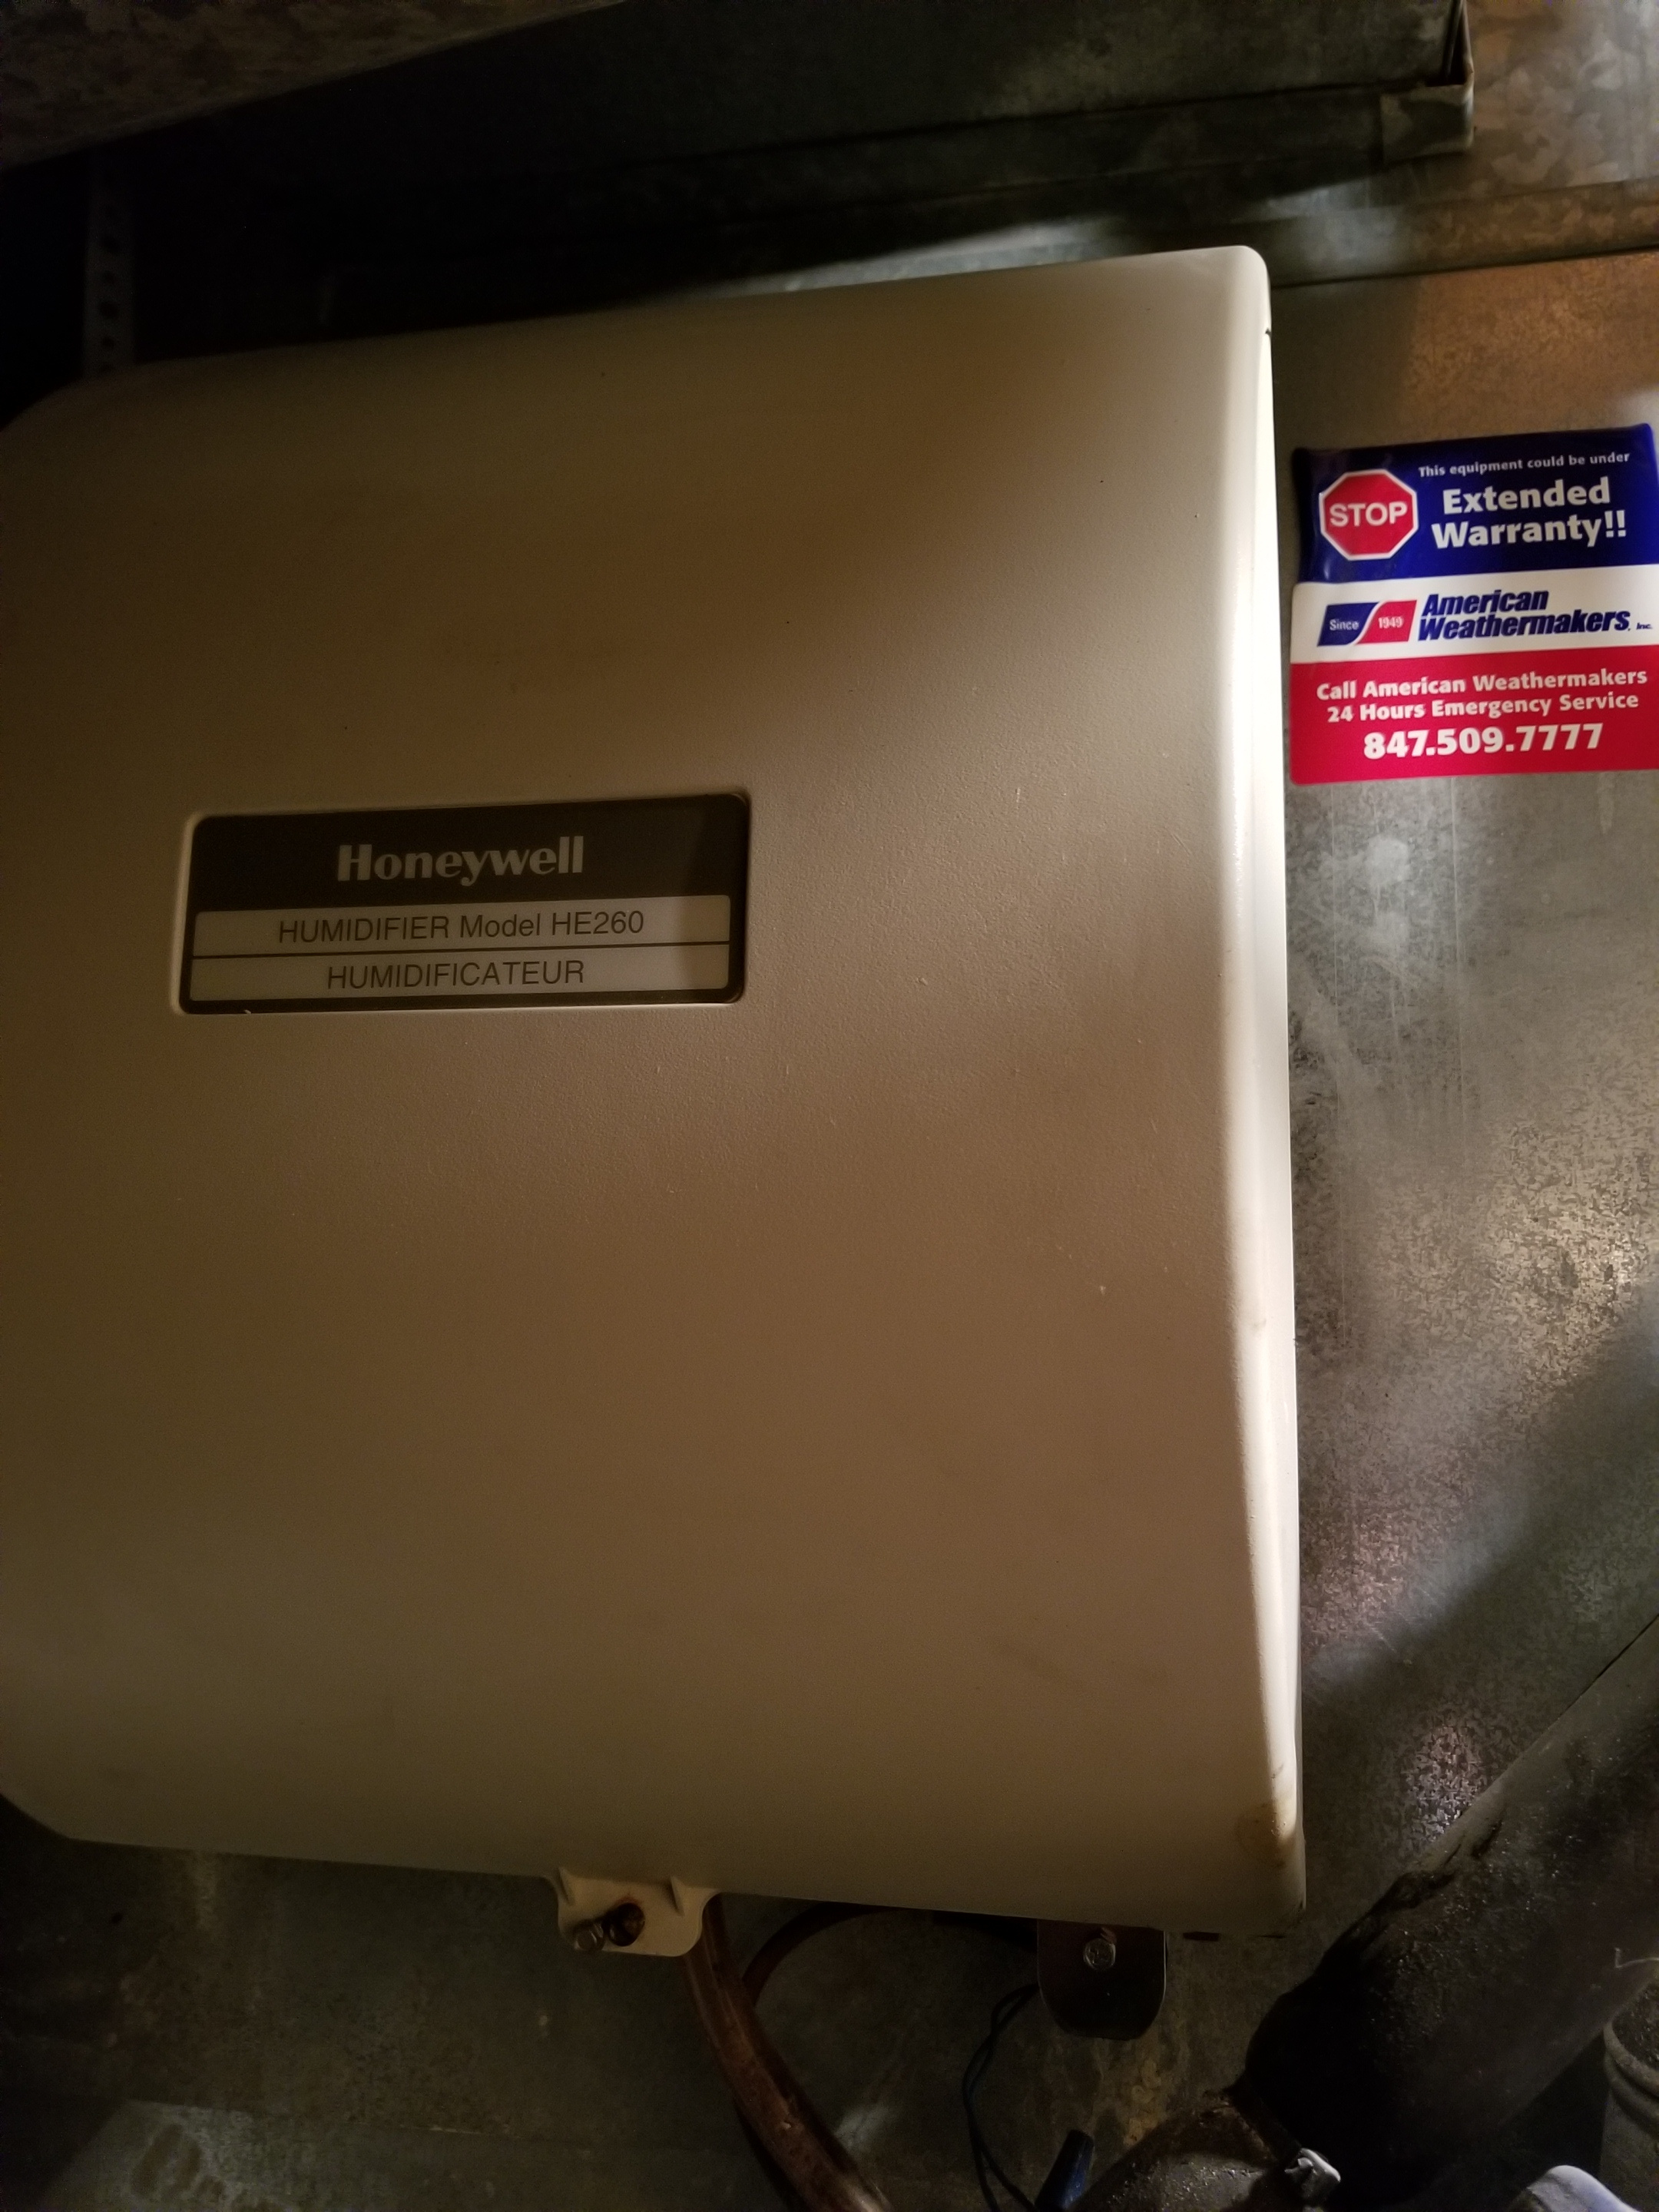 Performed annual maintenance on the Ruud furnace, Honeywell  humidifier & Honeywell air cleaner and made adjustments to improve the overall efficiency and life expectancy of the equipment